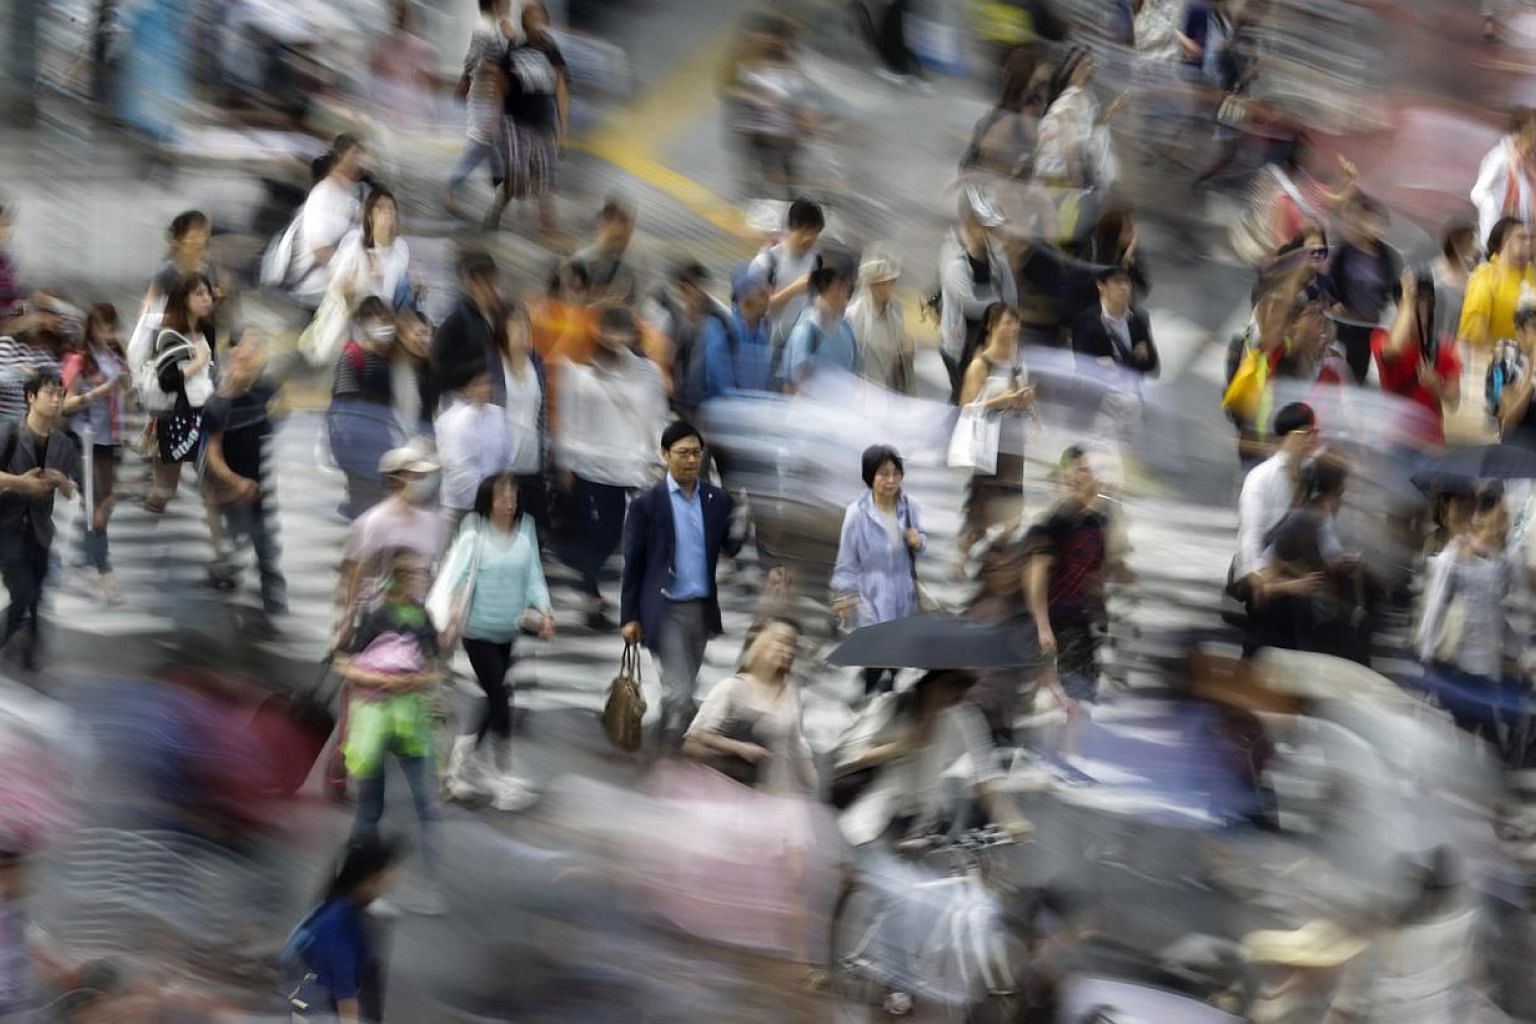 Japan's economy grew at its fastest pace in a year in January-March on modest increases in consumption and capital expenditure, adding to evidence the country is steadily emerging from last year's recession. -- PHOTO: EPA